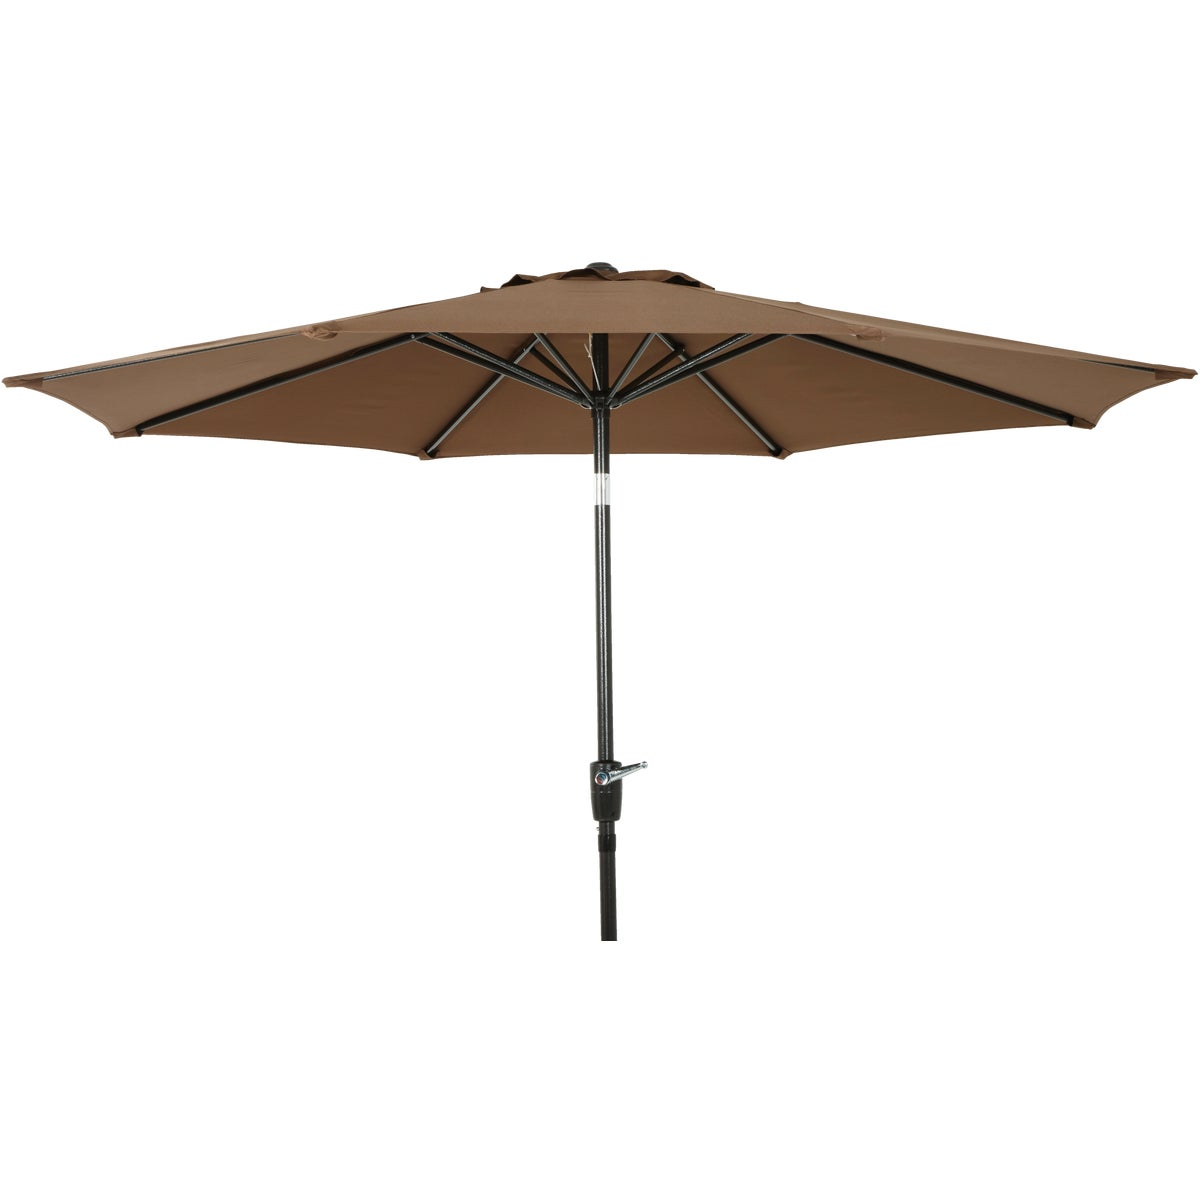 9' BROWN ALUM UMBRELLA - TJAU-004A-270-BRN by Do it Best